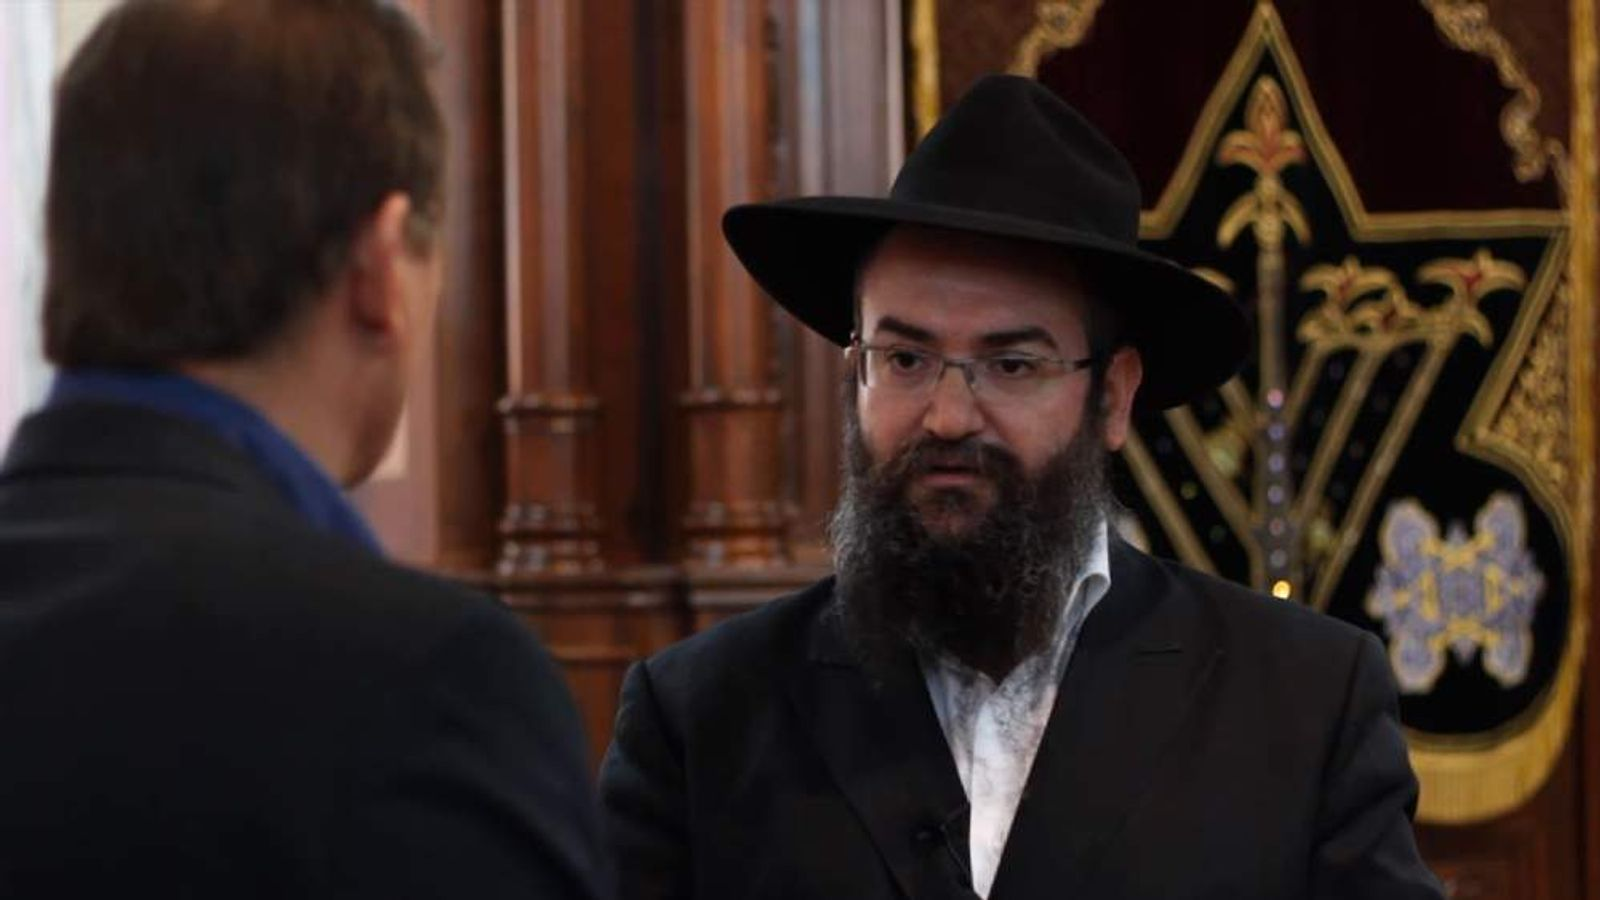 Rabbi Pinkhas Vishedski, Chief Rabbi Of Donetsk, Ukraine